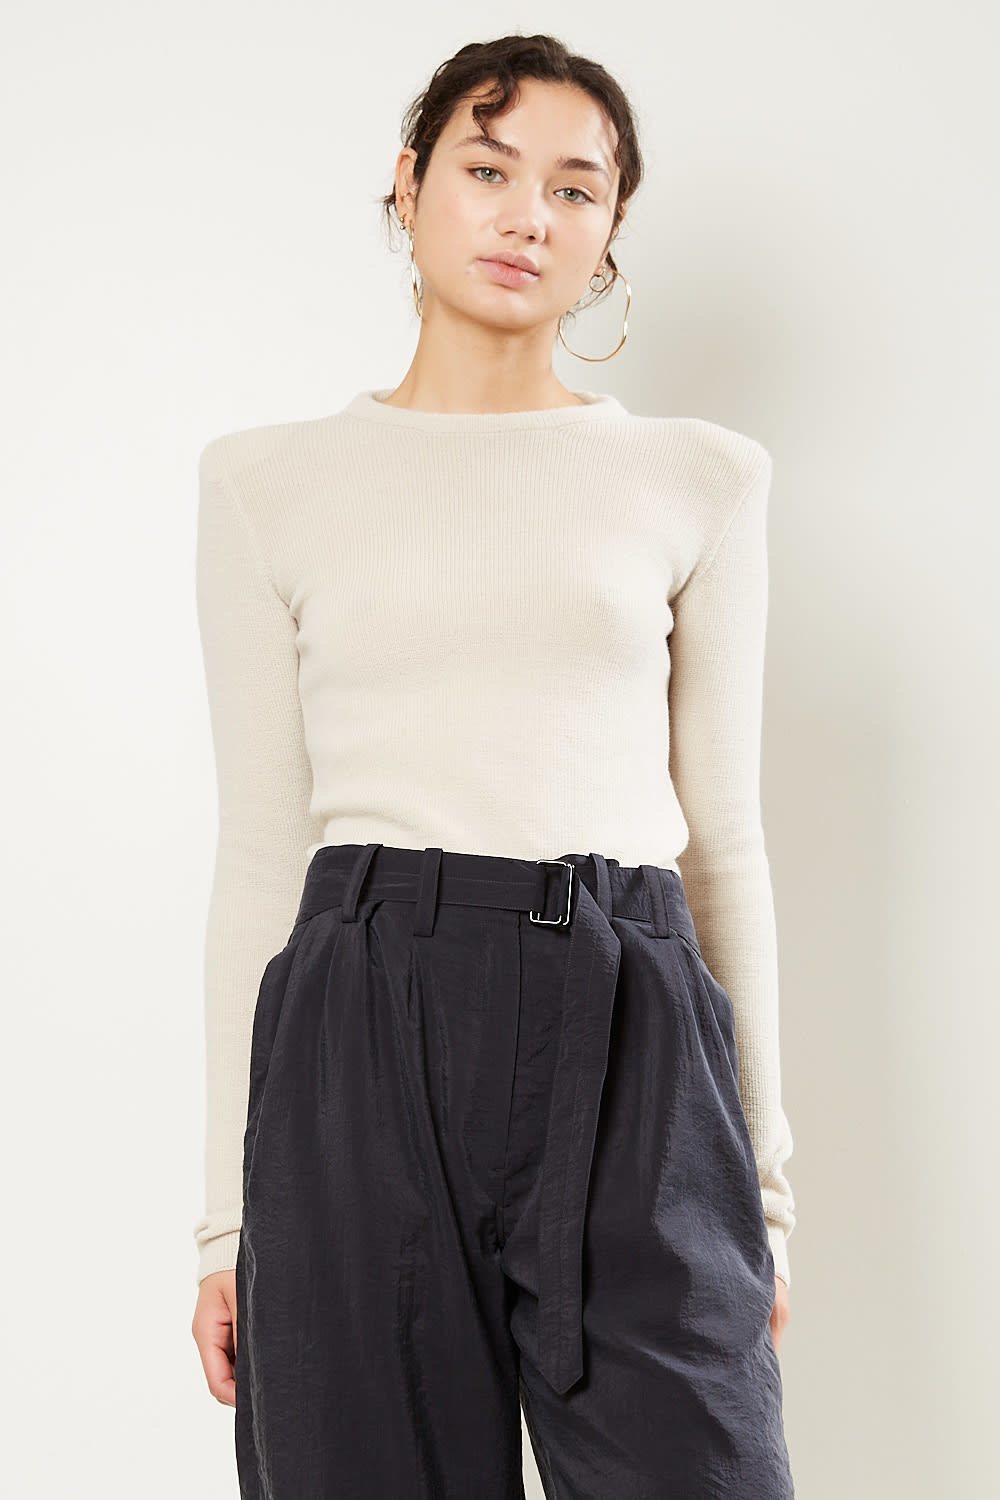 Lemaire Shoulder pad top